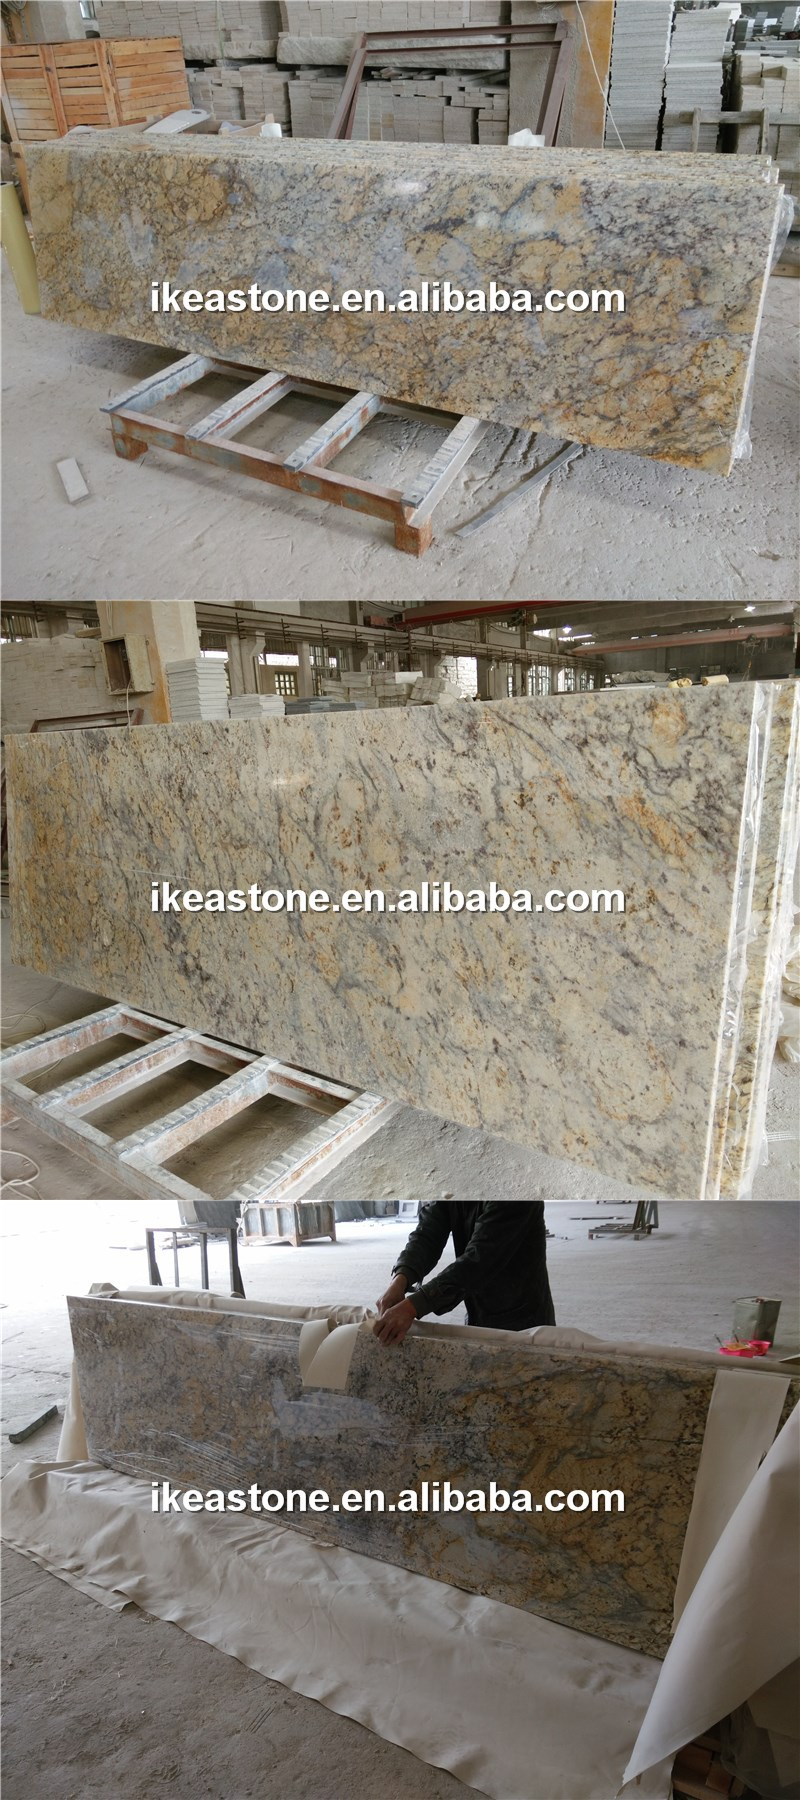 Granite Countertops Sale : Pre Cut Granite Countertops For Sale - Buy Pre Cut Granite Countertops ...